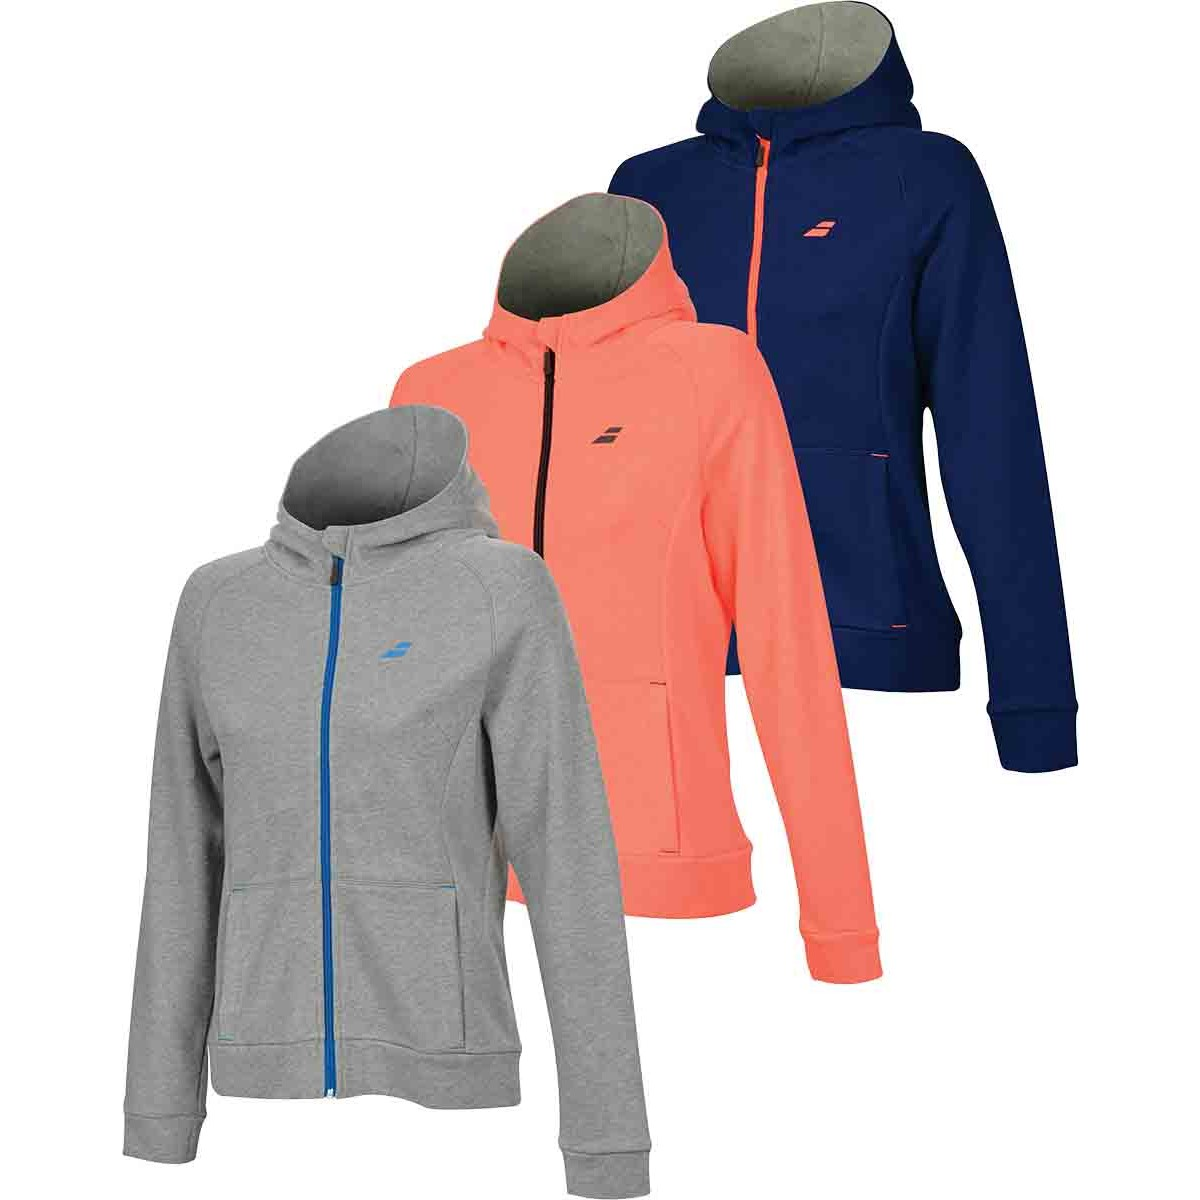 SWEAT A CAPUCHE ZIPPE BABOLAT JUNIOR FILLE CORE CLUB